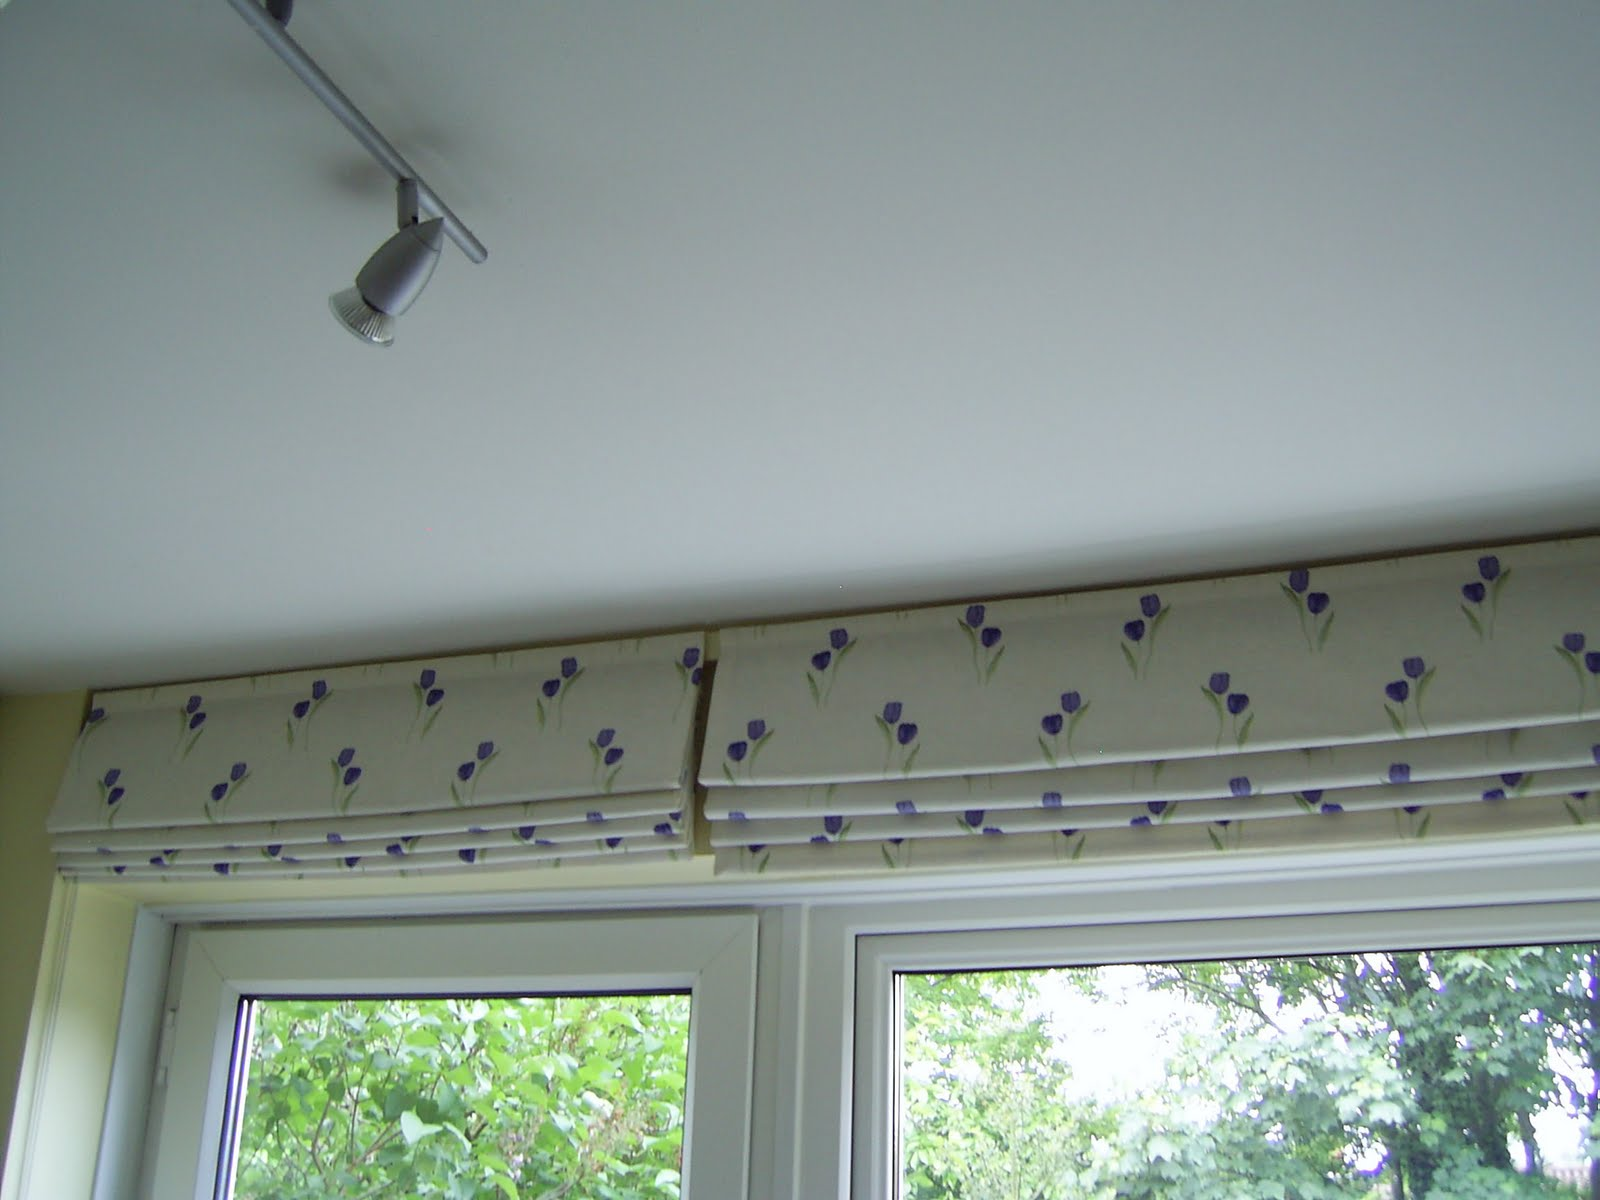 Roller Blinds For Kitchens Baggieaggie Low Cost Kitchen Blinds For Awkward Spaces